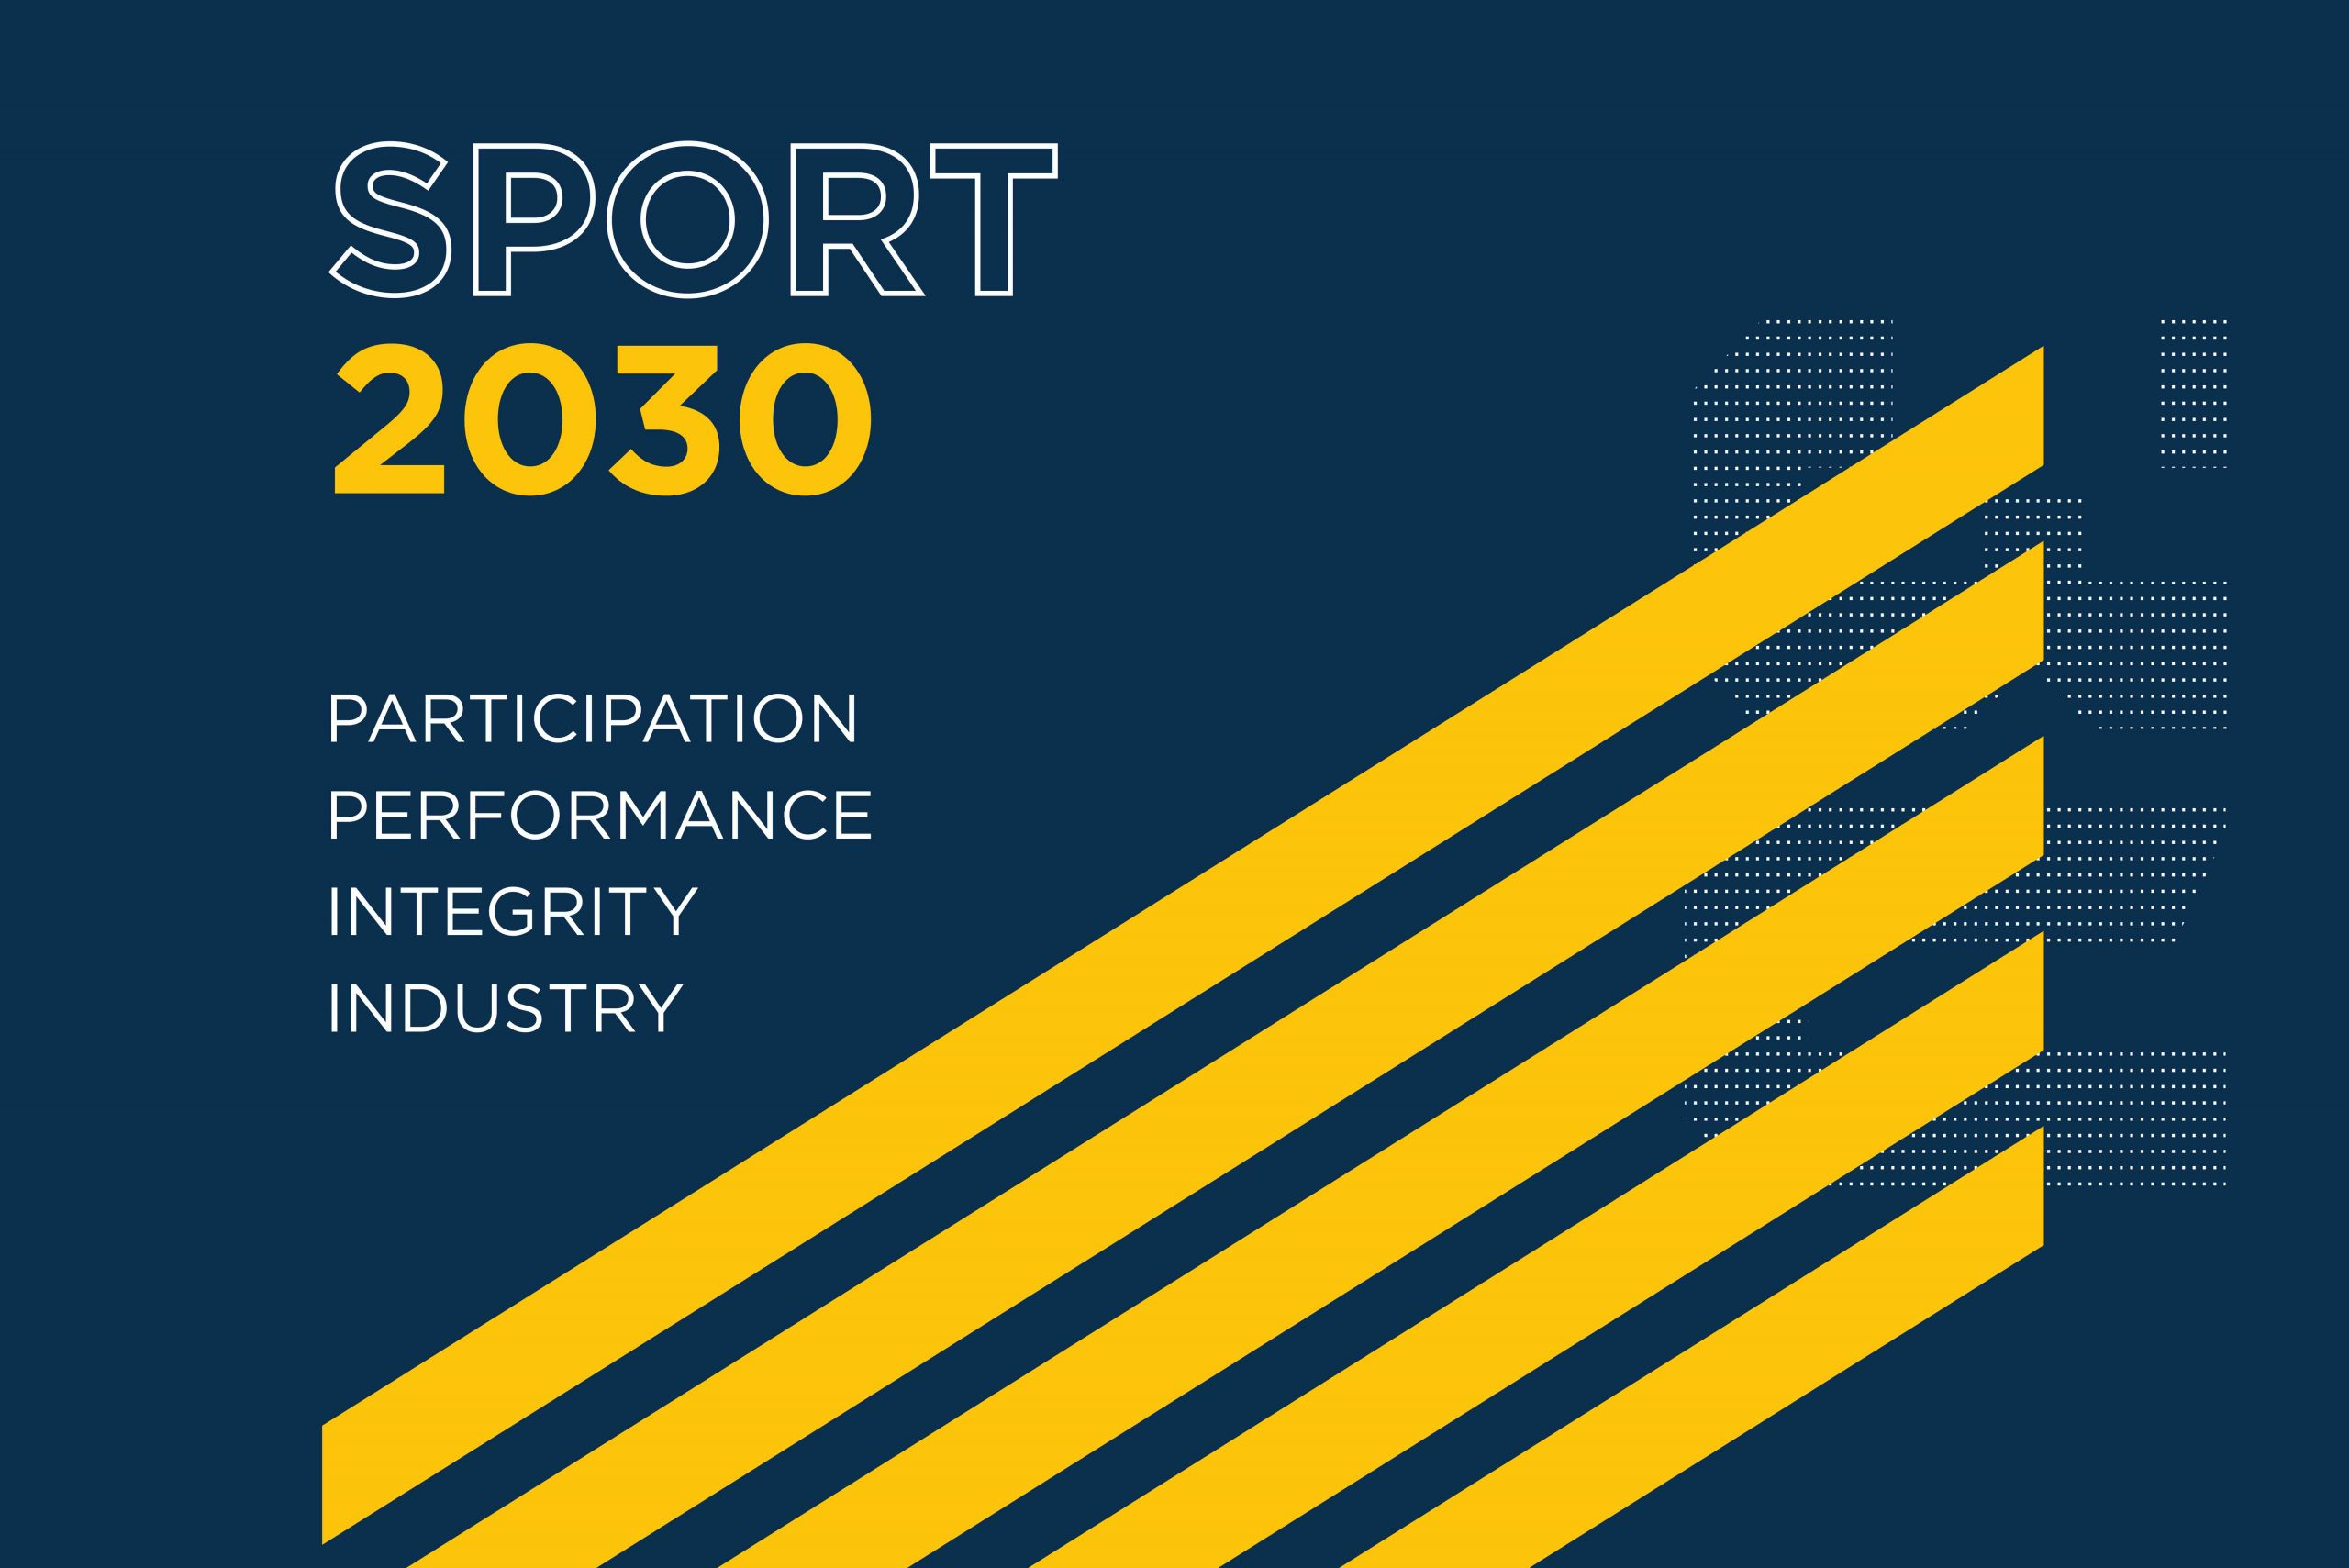 Blue background with 5 yellow stripes. Text reads Sport 2030 followed by text participation, performance, integrity and industry